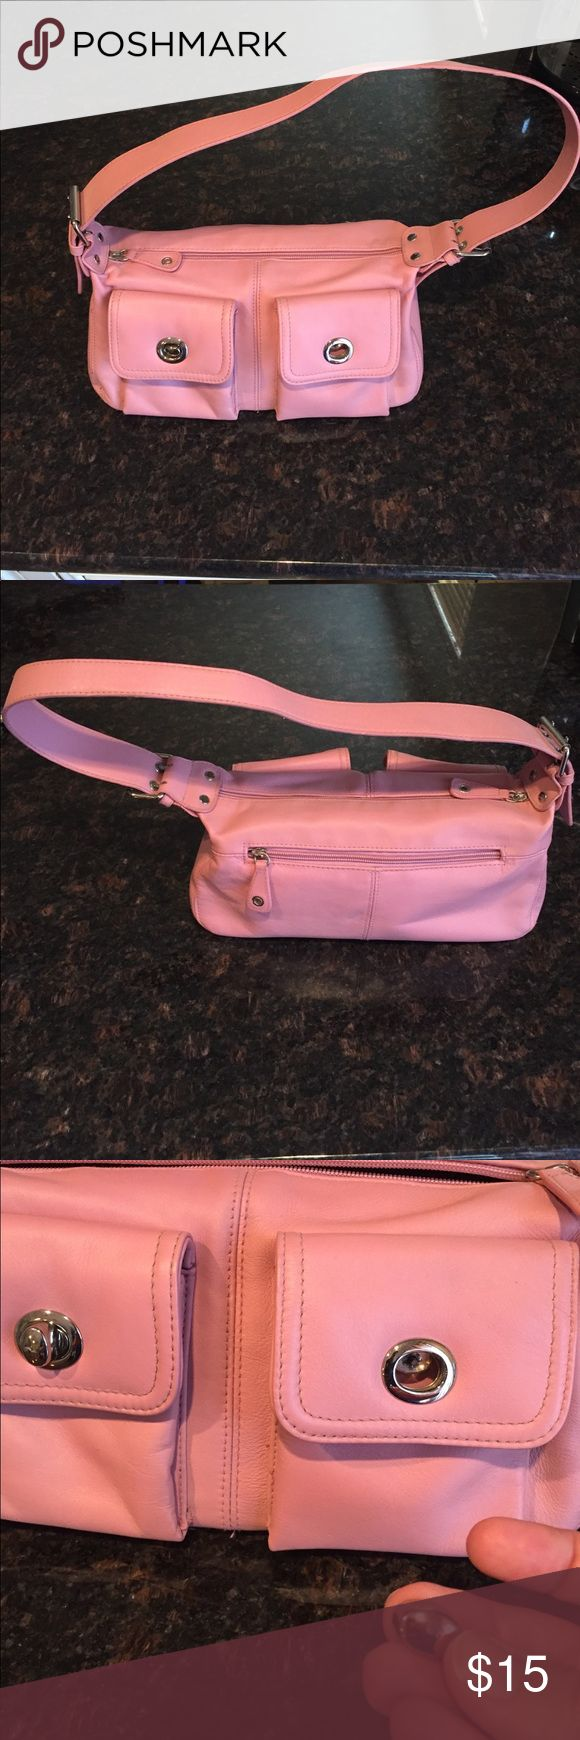 Apostrophe shoulder bag Very cute bag from Sears in the perfect shade of pink. Has two outside pockets with turnlock closures. Turning part of one of the locks has come off and can probably be reattached. Under each flap is a bit of discoloration which can probably be cleaned. Backside of the bag has a zipper pocket. There is also a zipper to the main compartment. Inside is a black lining with pink polka dots, another zipper pocket, two slip pockets and slots for ID and credit cards…